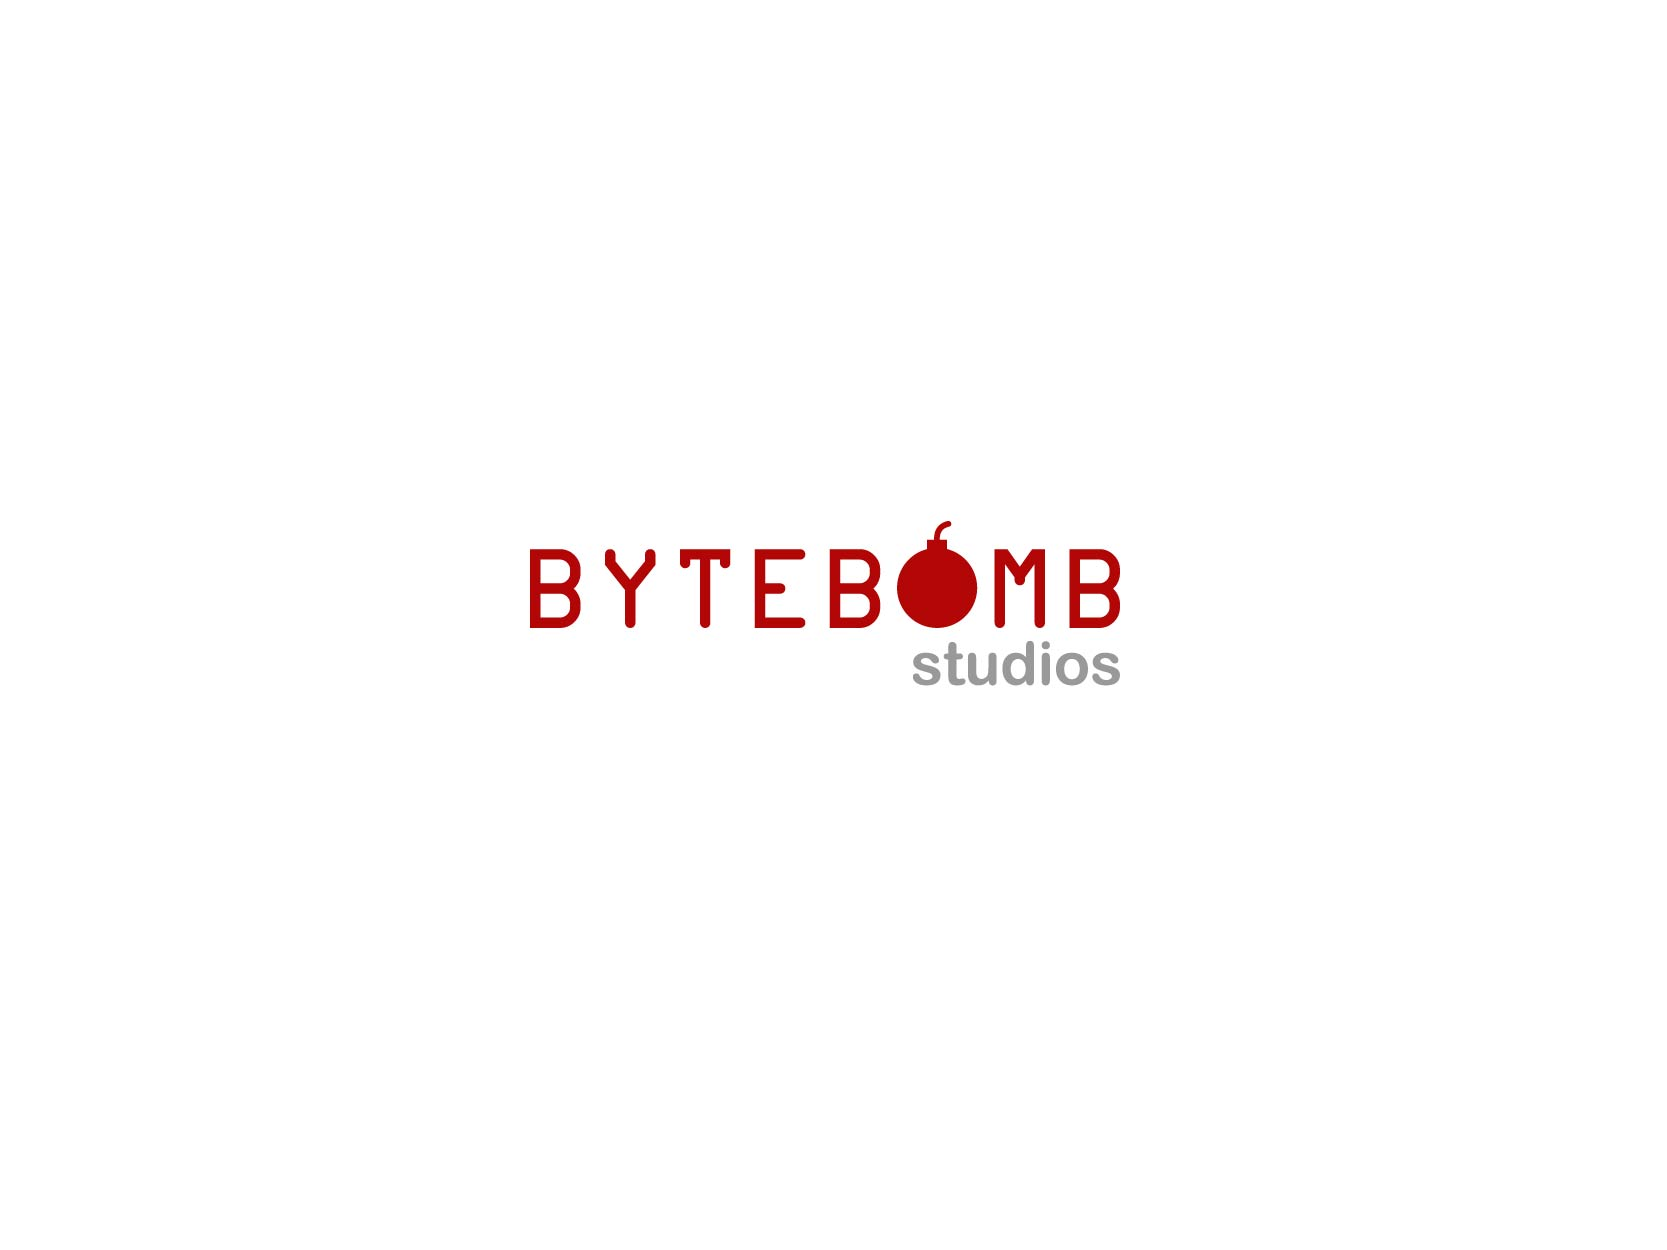 Logo Design by Osi Indra - Entry No. 62 in the Logo Design Contest Captivating Logo Design for ByteBomb Studios.